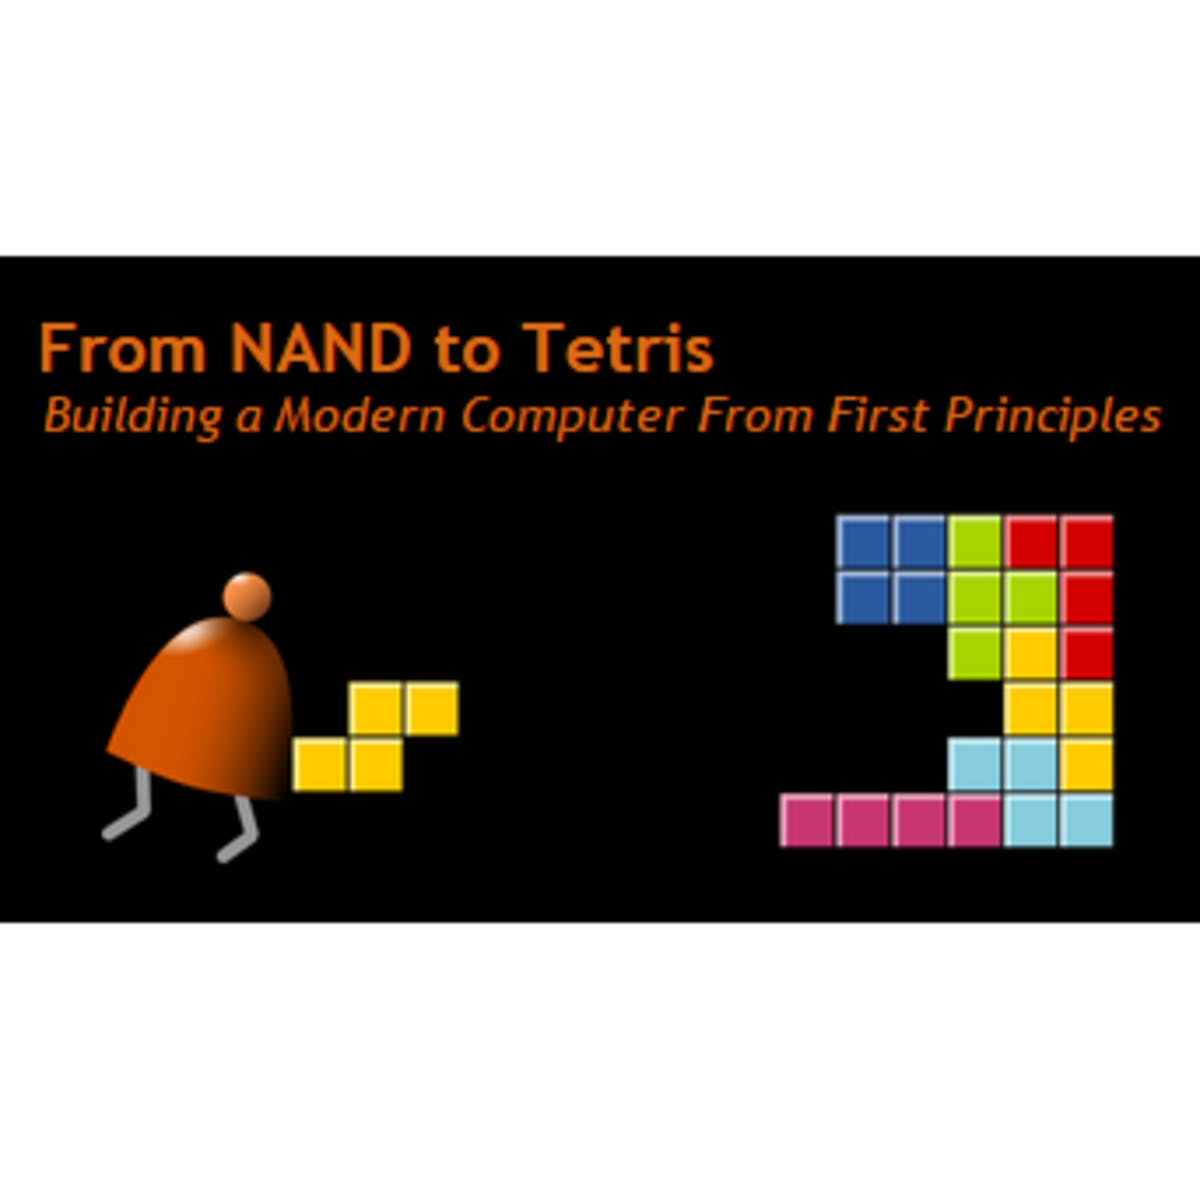 Build a modern computer from first principles nand to tetris part build a modern computer from first principles nand to tetris part ii project centered course coursera fandeluxe Images